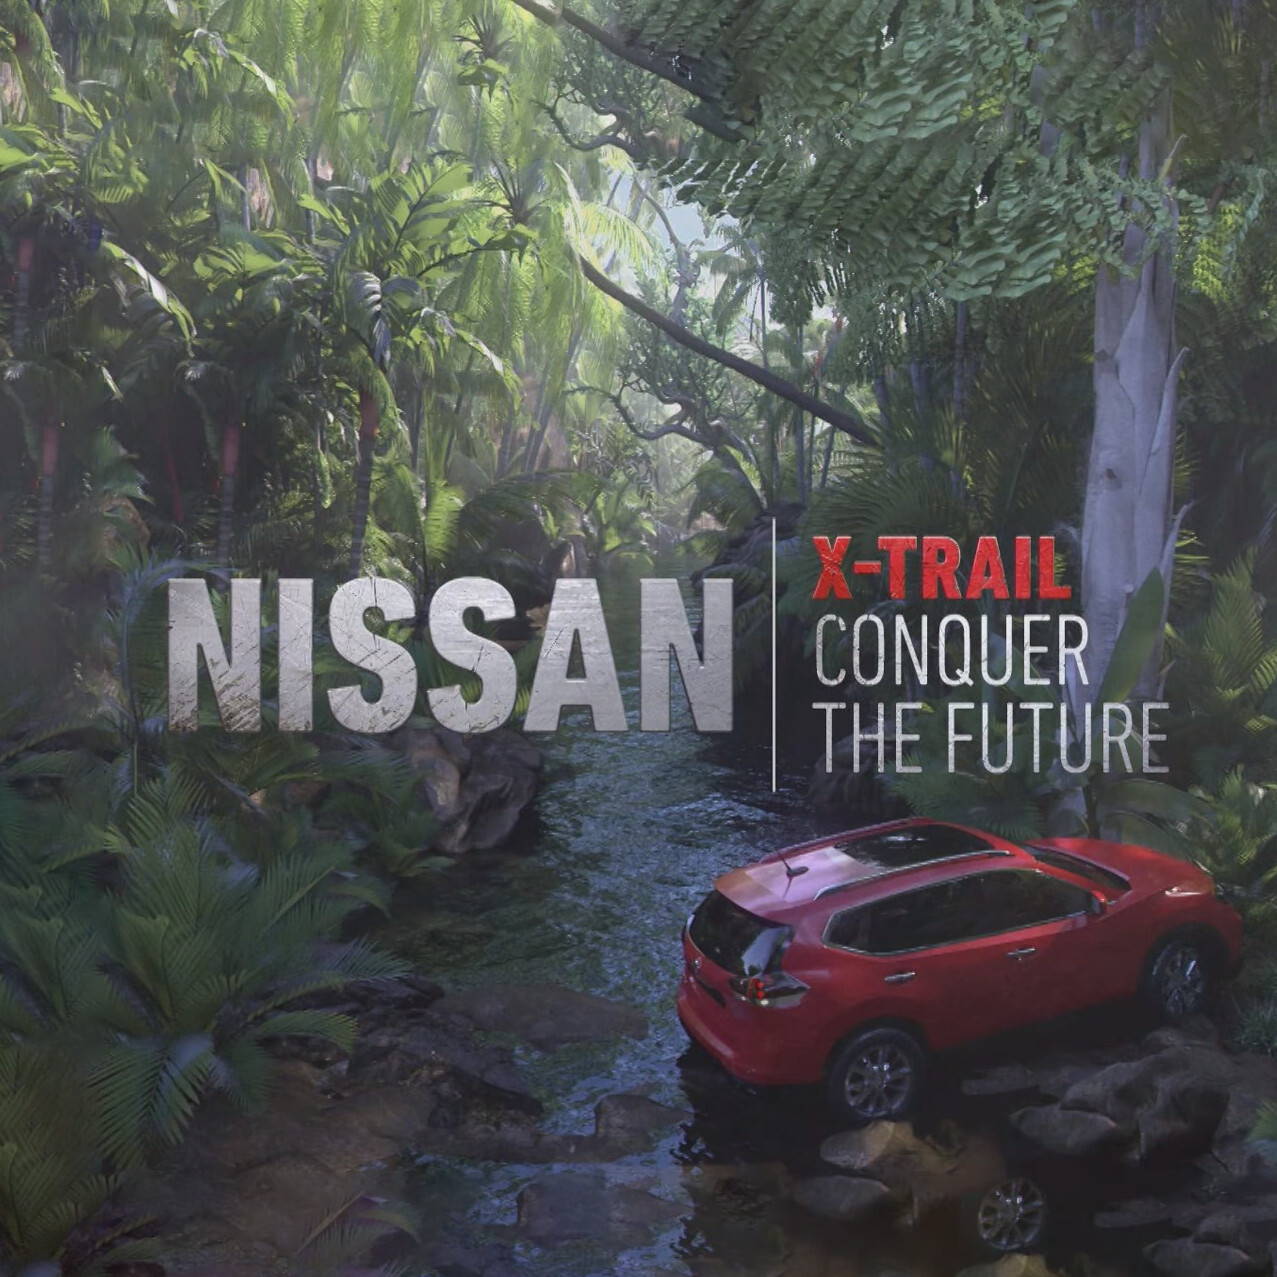 Nissan X-Trail: Explore the Unknown